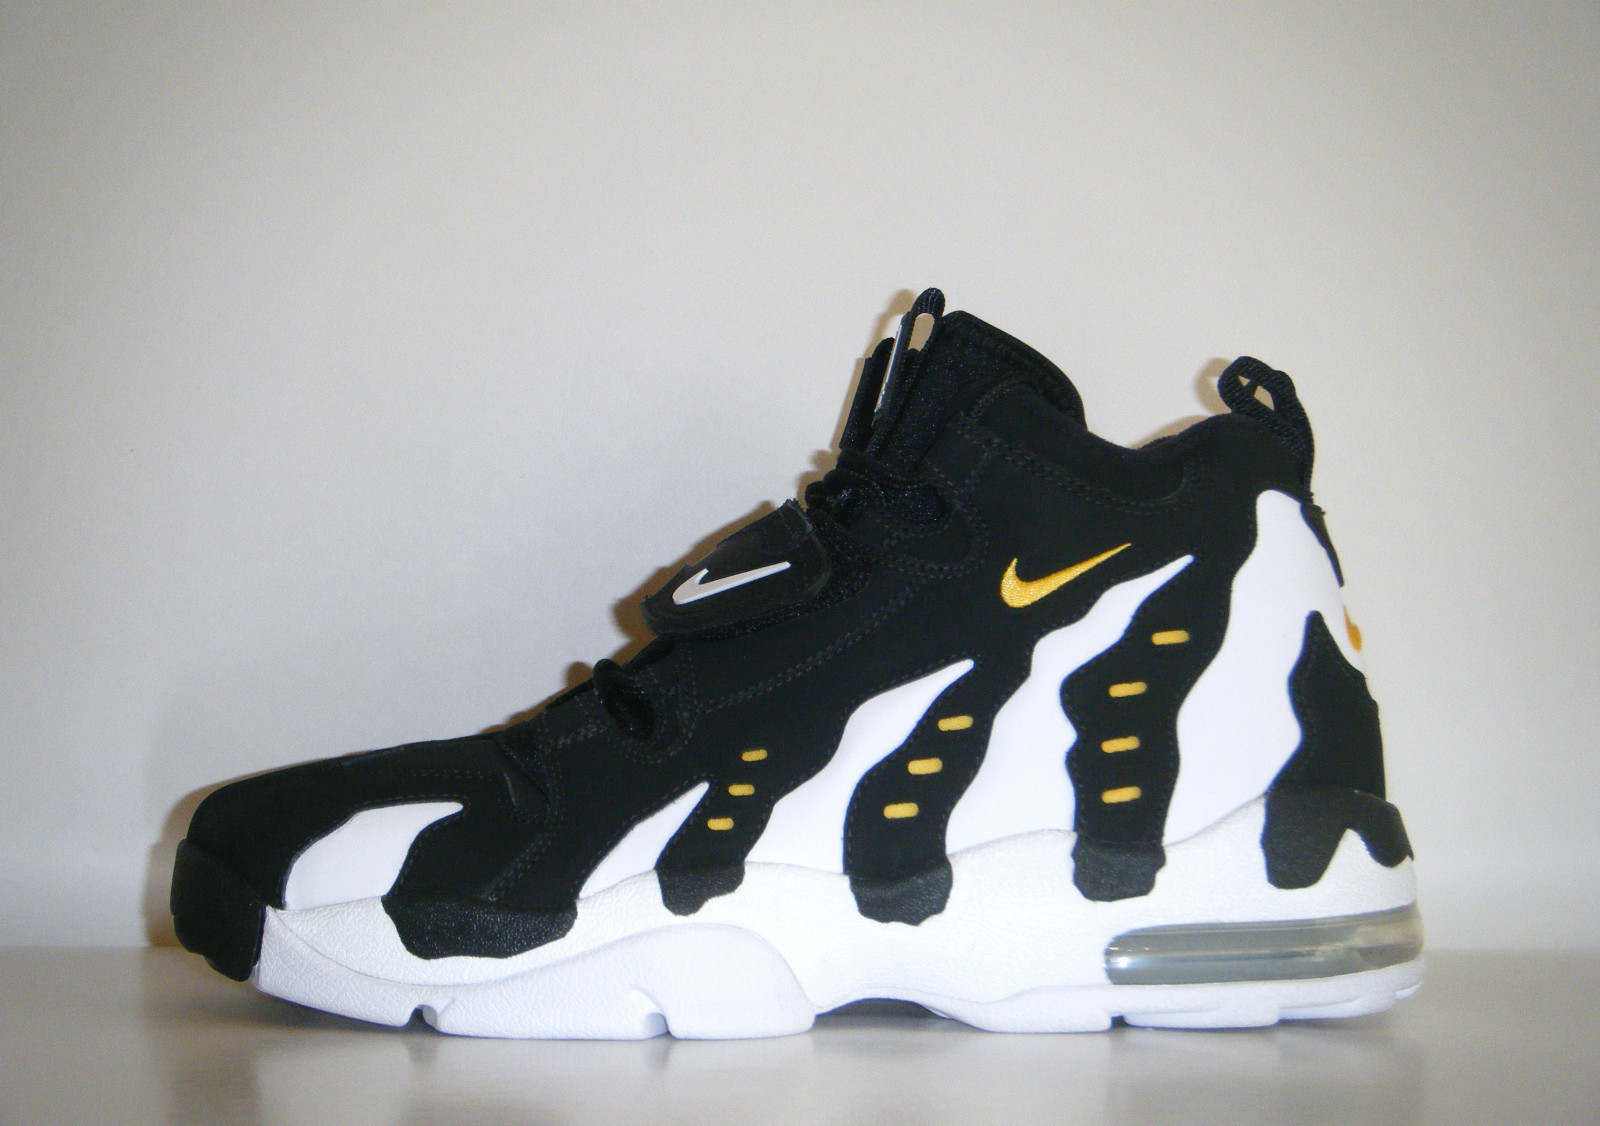 7d0805f256 Nike Air DT Max '96 - Two Colorways   Sole Collector